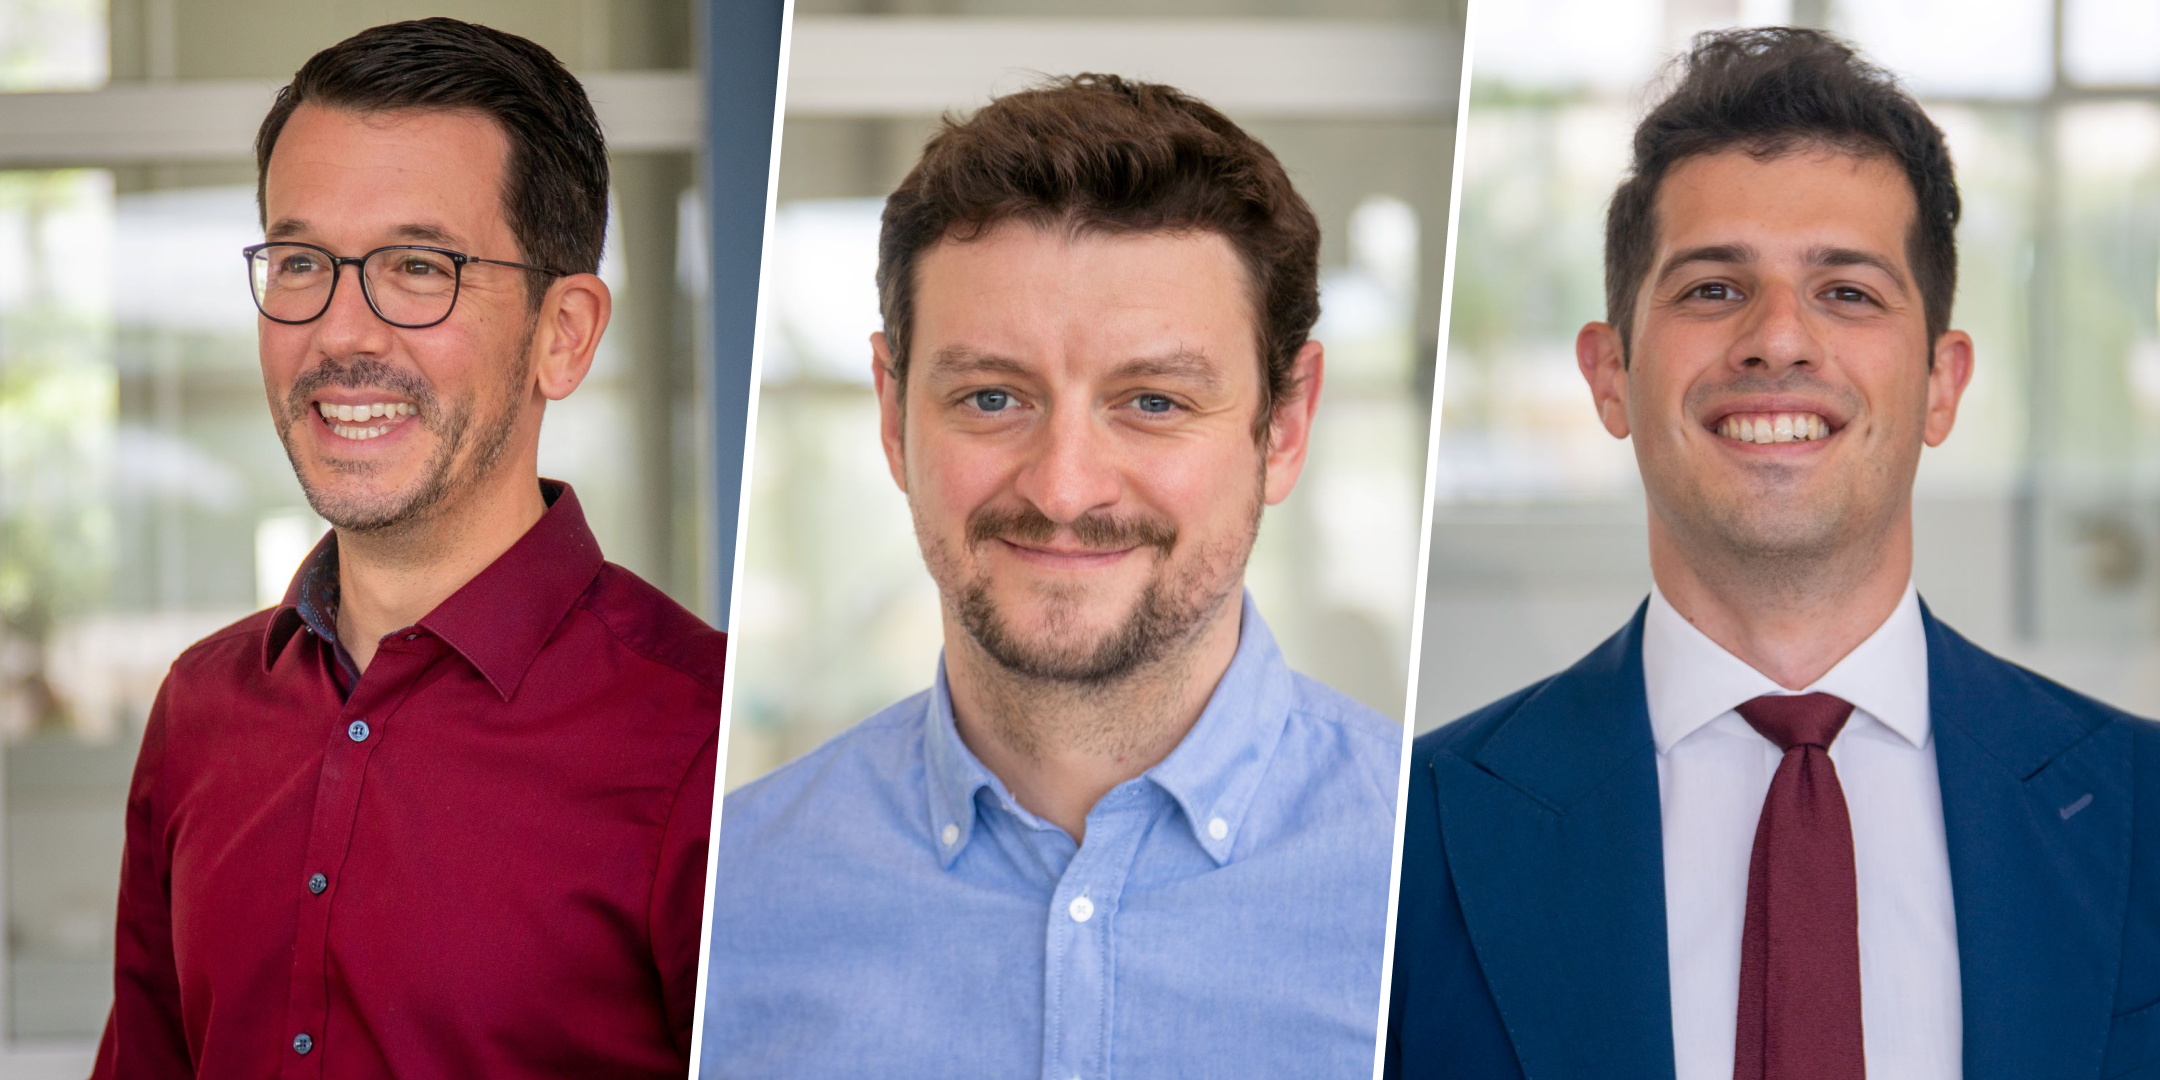 9T LABS ANNOUNCES NEW HIRES, INCLUDING CTO, SALES MANAGERS FOR ITALY AND DACH REGIONS